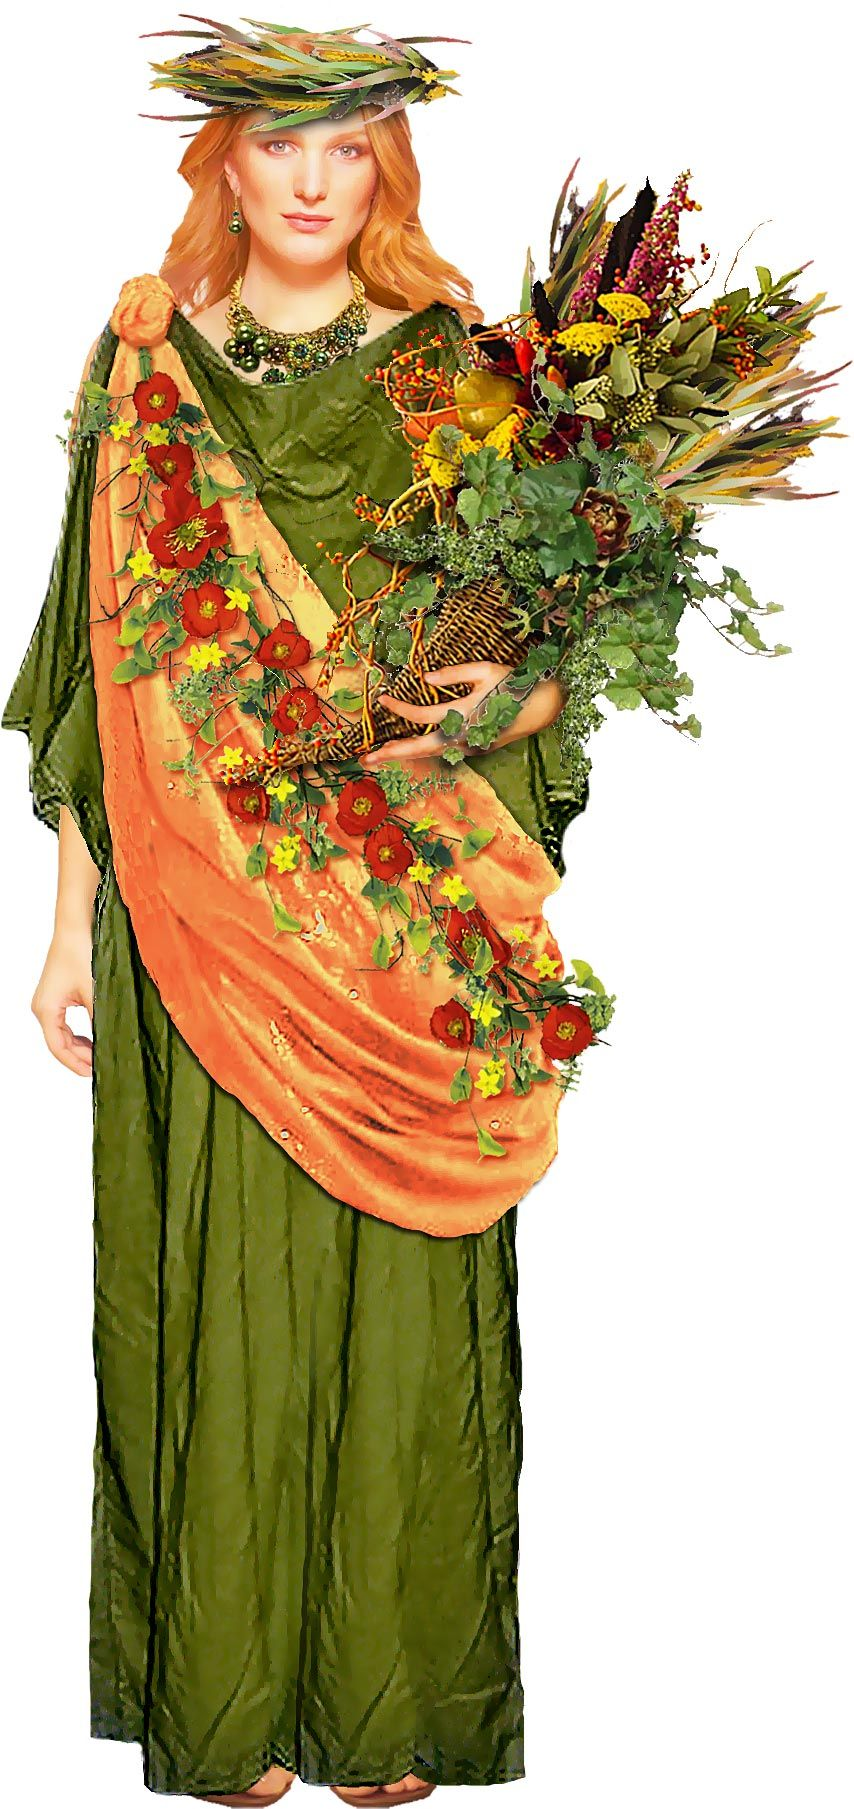 Demeter Is The Greek Goddess Of Agriculture And The Bountiful Earth